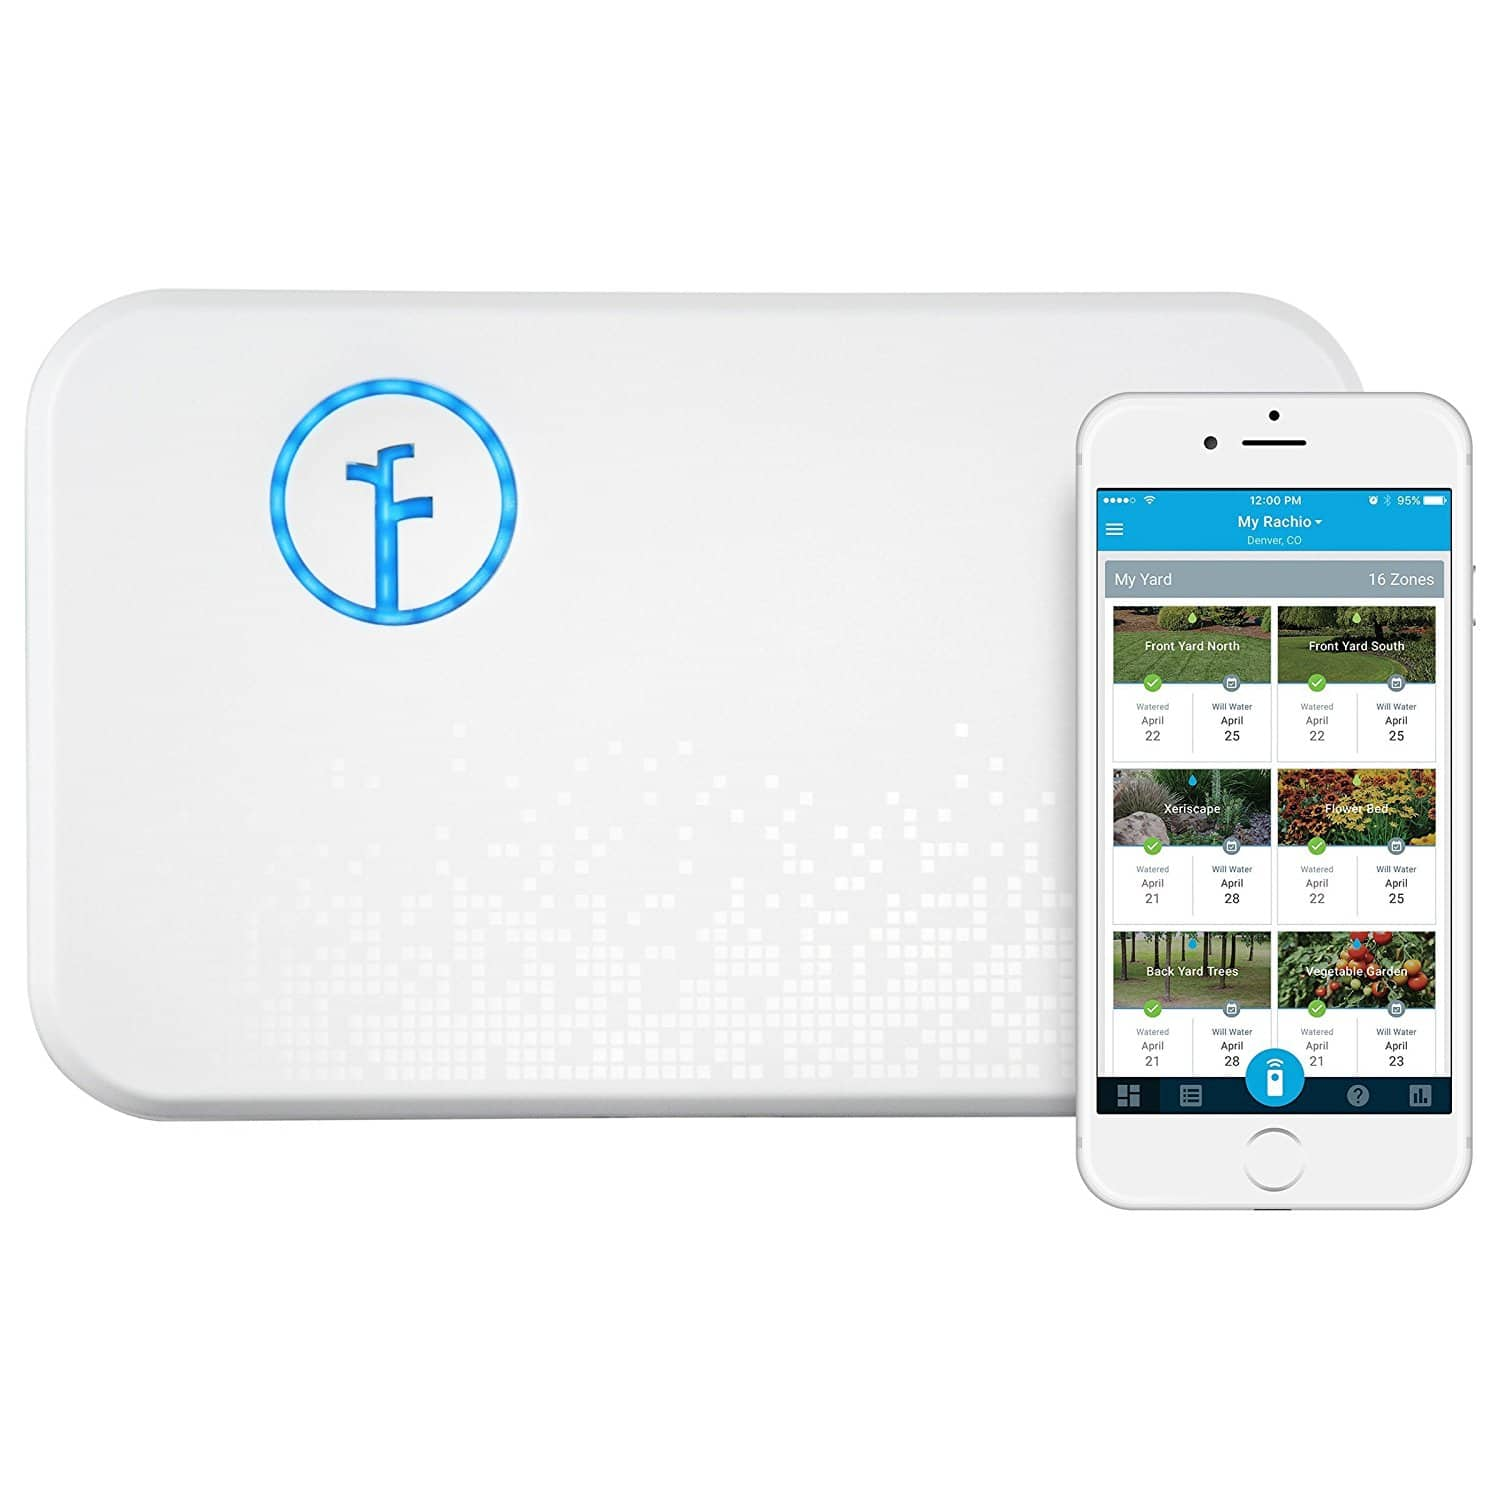 Rachio Smart Sprinkler Controller, Wi-Fi, 16-Zone 2nd Generation $142.50